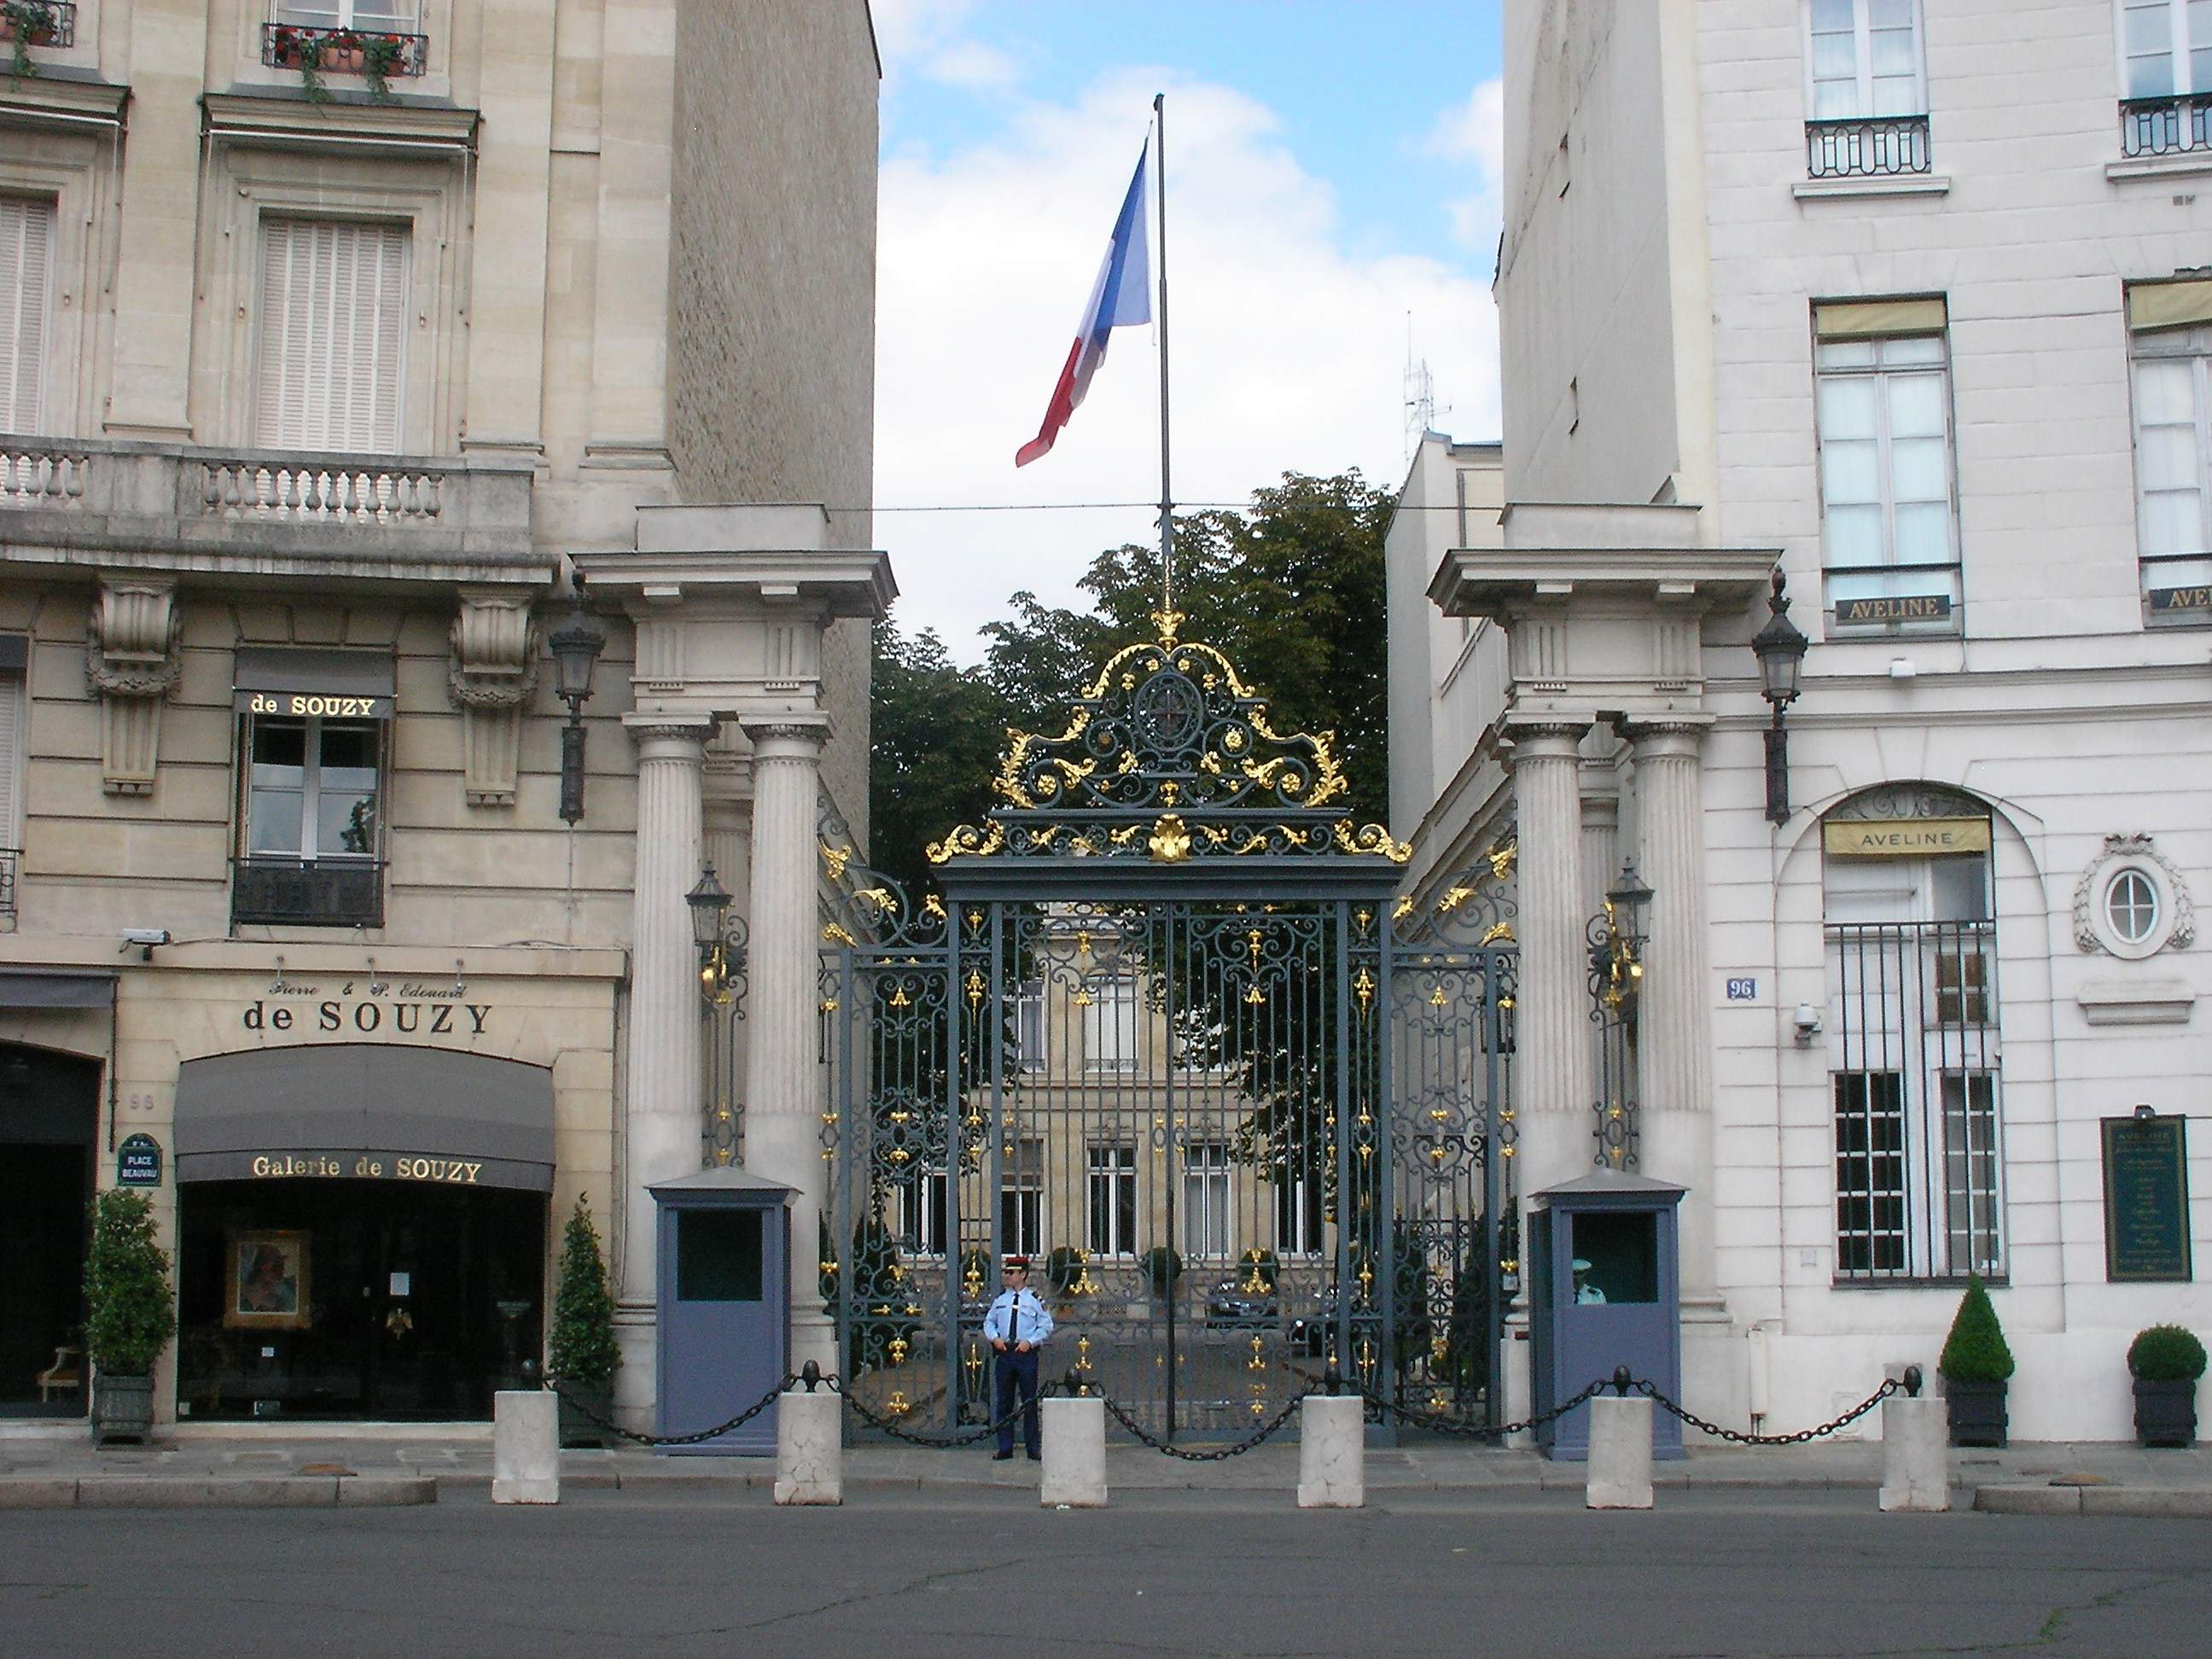 https://upload.wikimedia.org/wikipedia/commons/4/4c/Minist%C3%A8re_de_l%27Int%C3%A9rieur_%28Paris%29.jpg